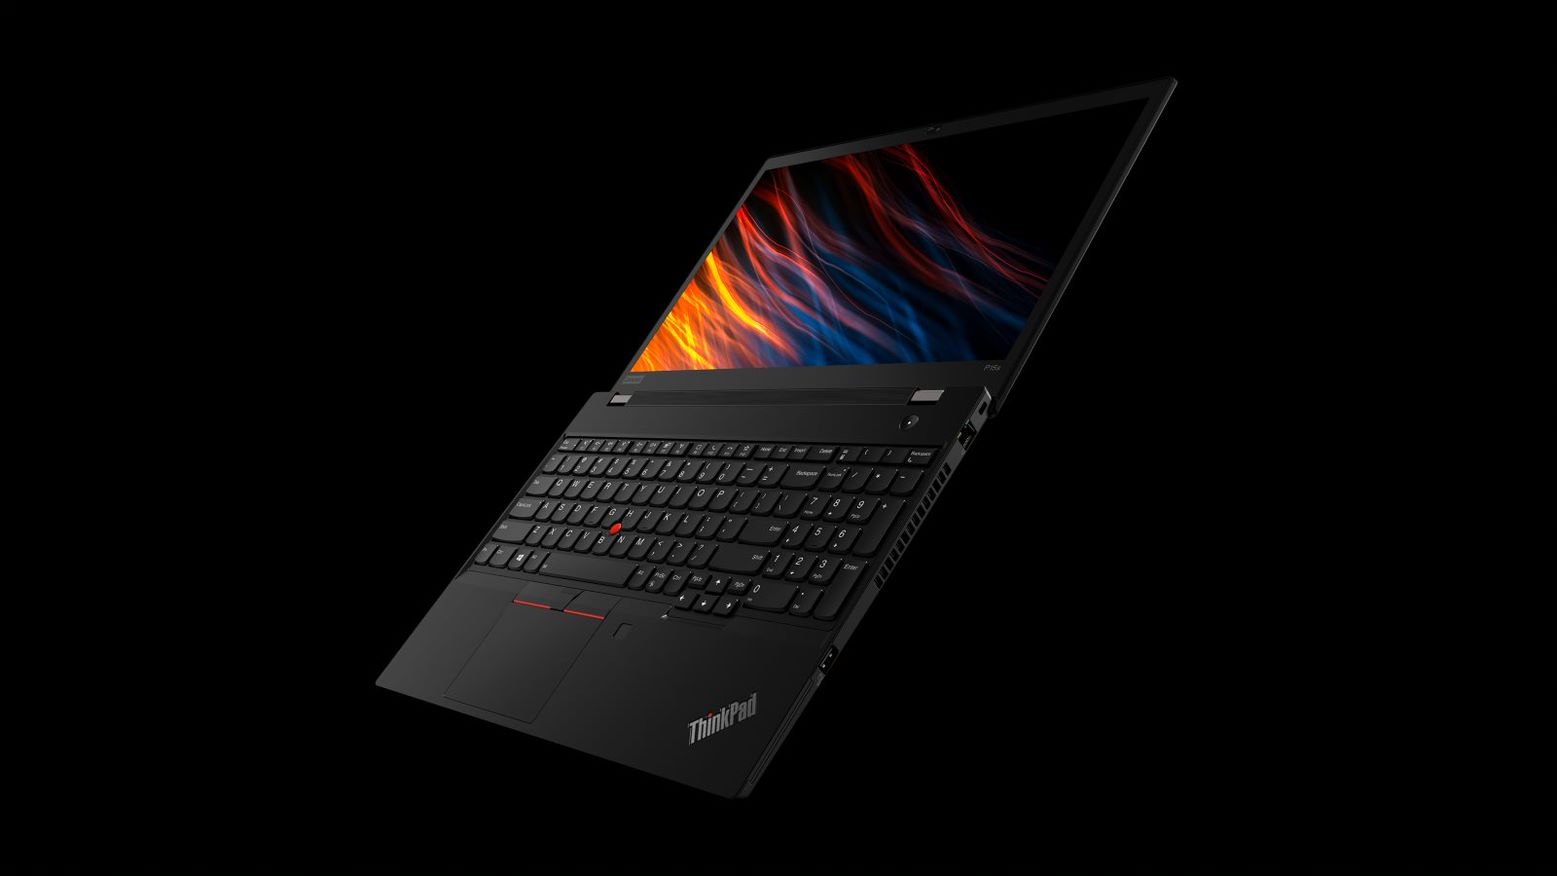 Lenovo ThinkPad P14s Gen 2, ThinkPad P14si Gen 2 and ThinkPad P15s Gen 2  launched with 11th-generation Intel Tiger Lake/AMD Ryzen 5000 CPUs,  workstation-grade GPUs, and more - NotebookCheck.net News